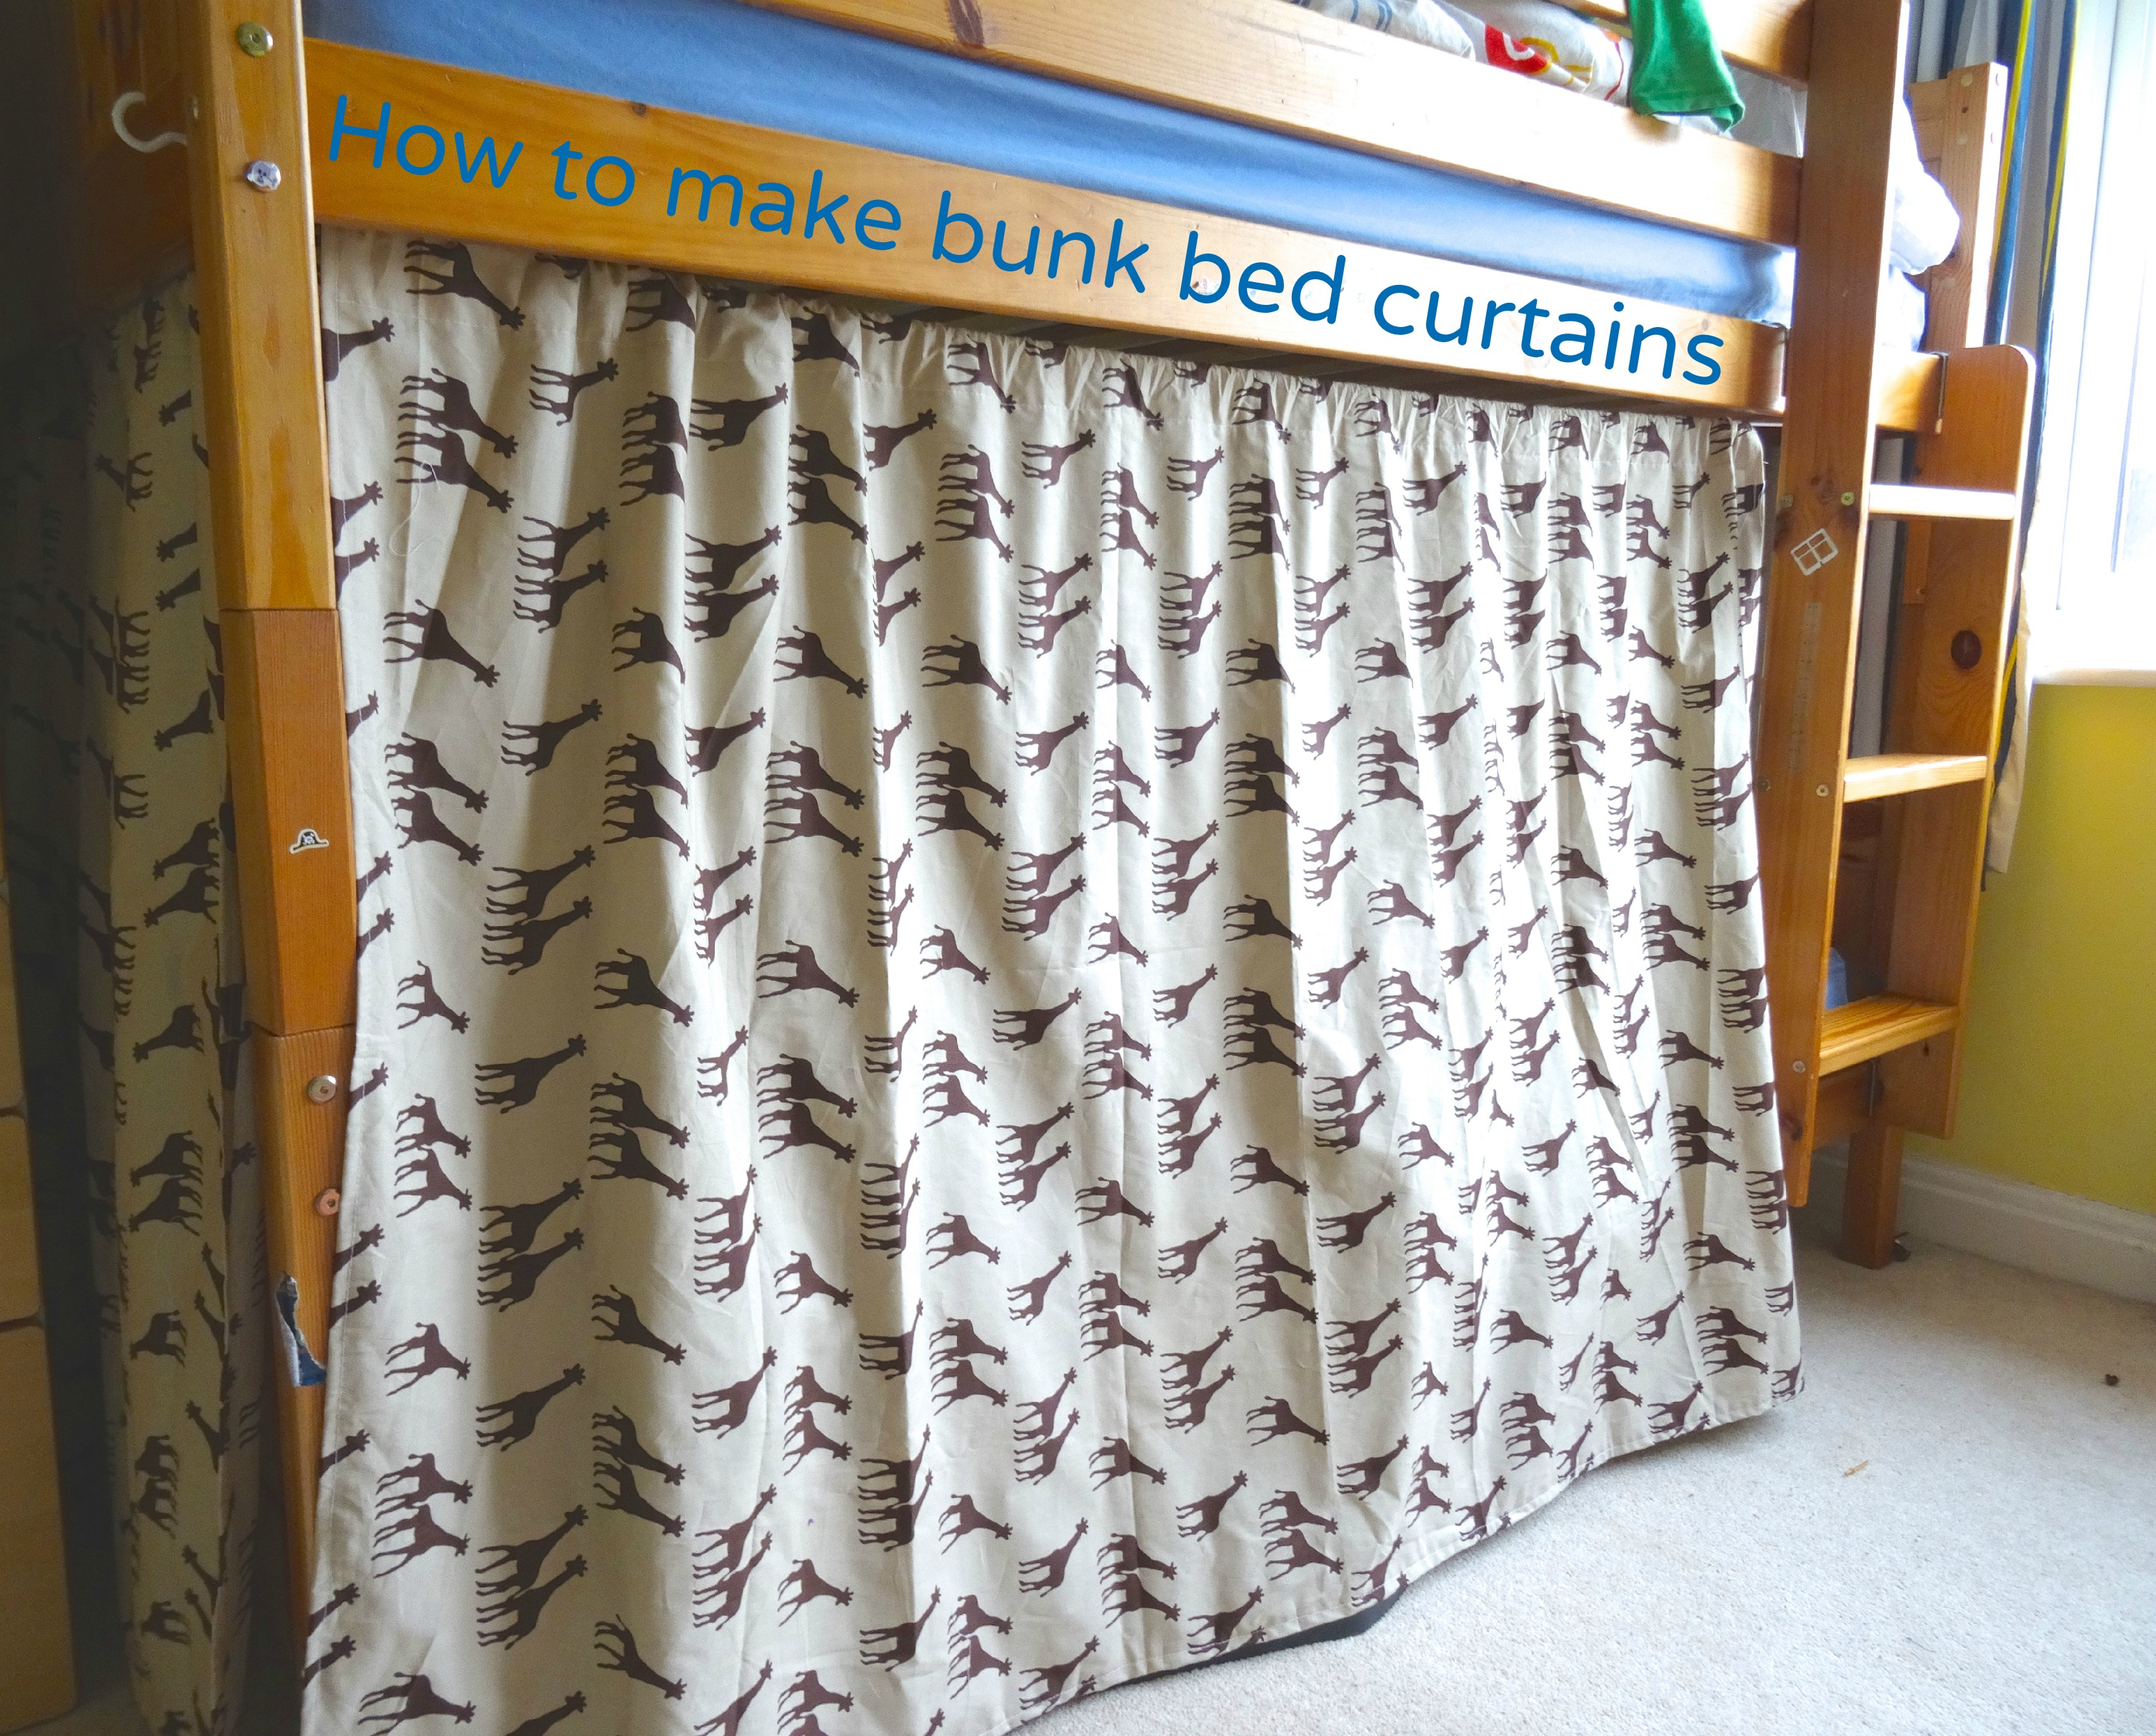 How To Make Bunk Bed Curtains. Changing Table Dresser Topper. Pencil Drawer Organizer. Boys Bed With Drawers. Walker Edison Computer Desk. Usa Jobs Help Desk. Kids Desk Target. South Shore 4 Drawer Chest. Cuny Help Desk Phone Number